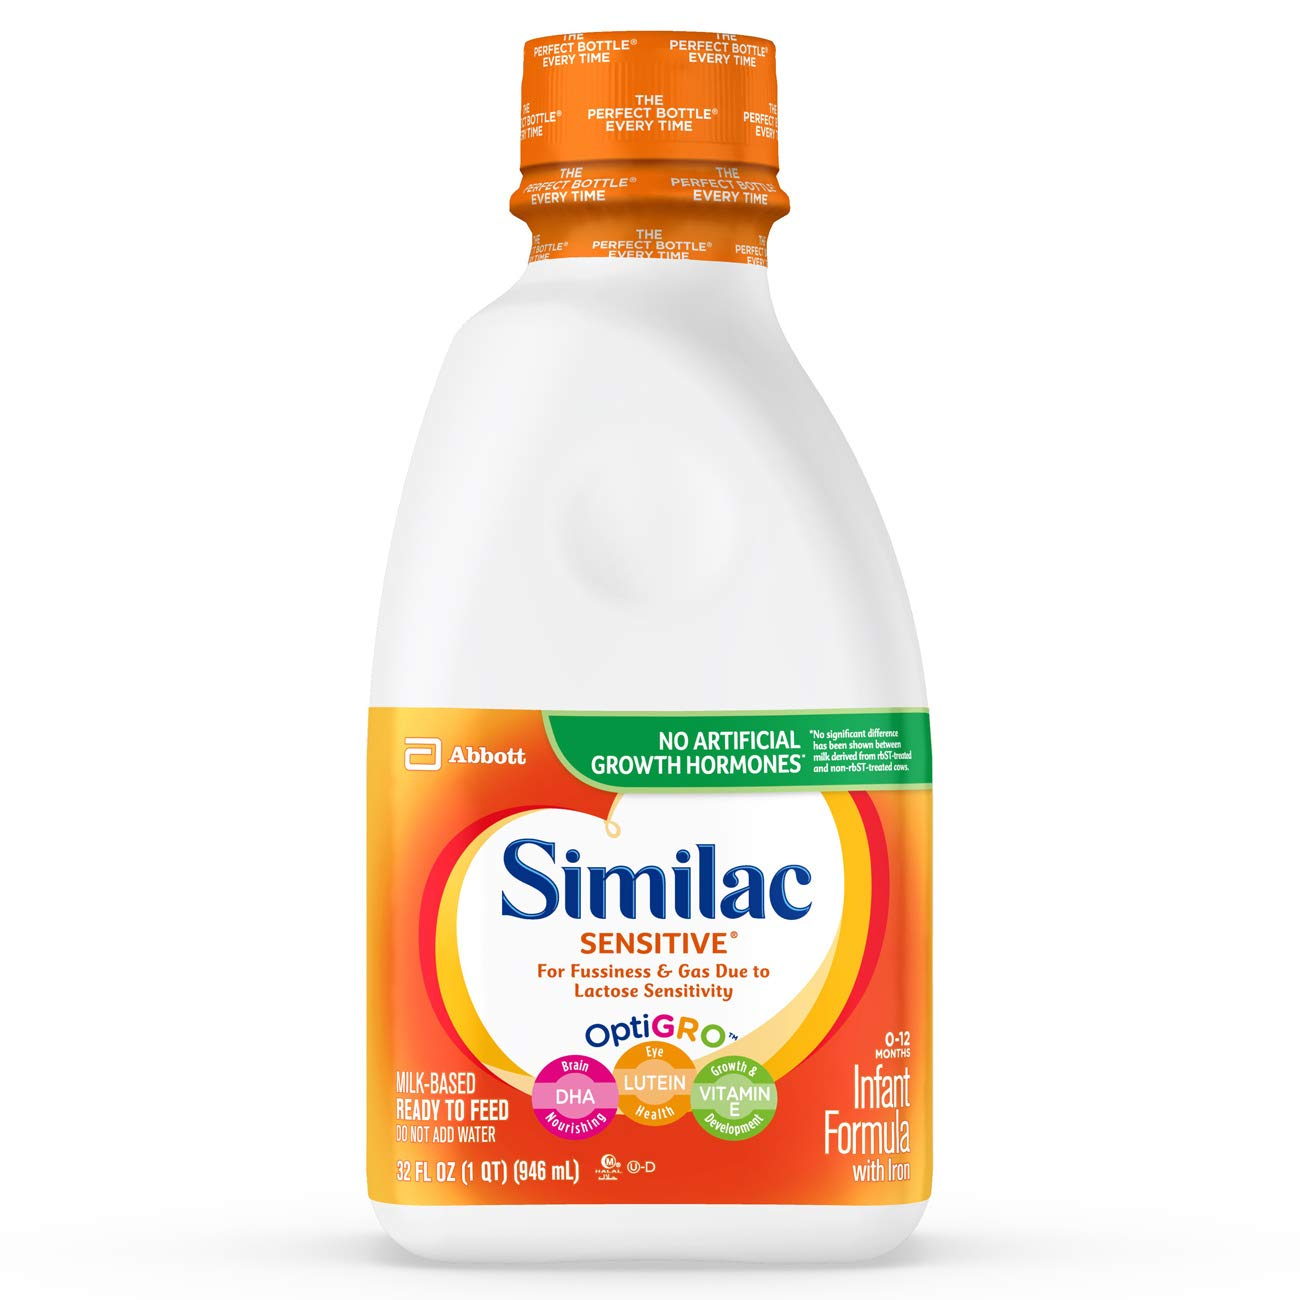 Similac Sensitive Infant Formula with Iron, For Fussiness and Gas, Baby Formula, Ready-to-Feed, Ready to Feed, 1 qt Abbott Nutrition 070074575339